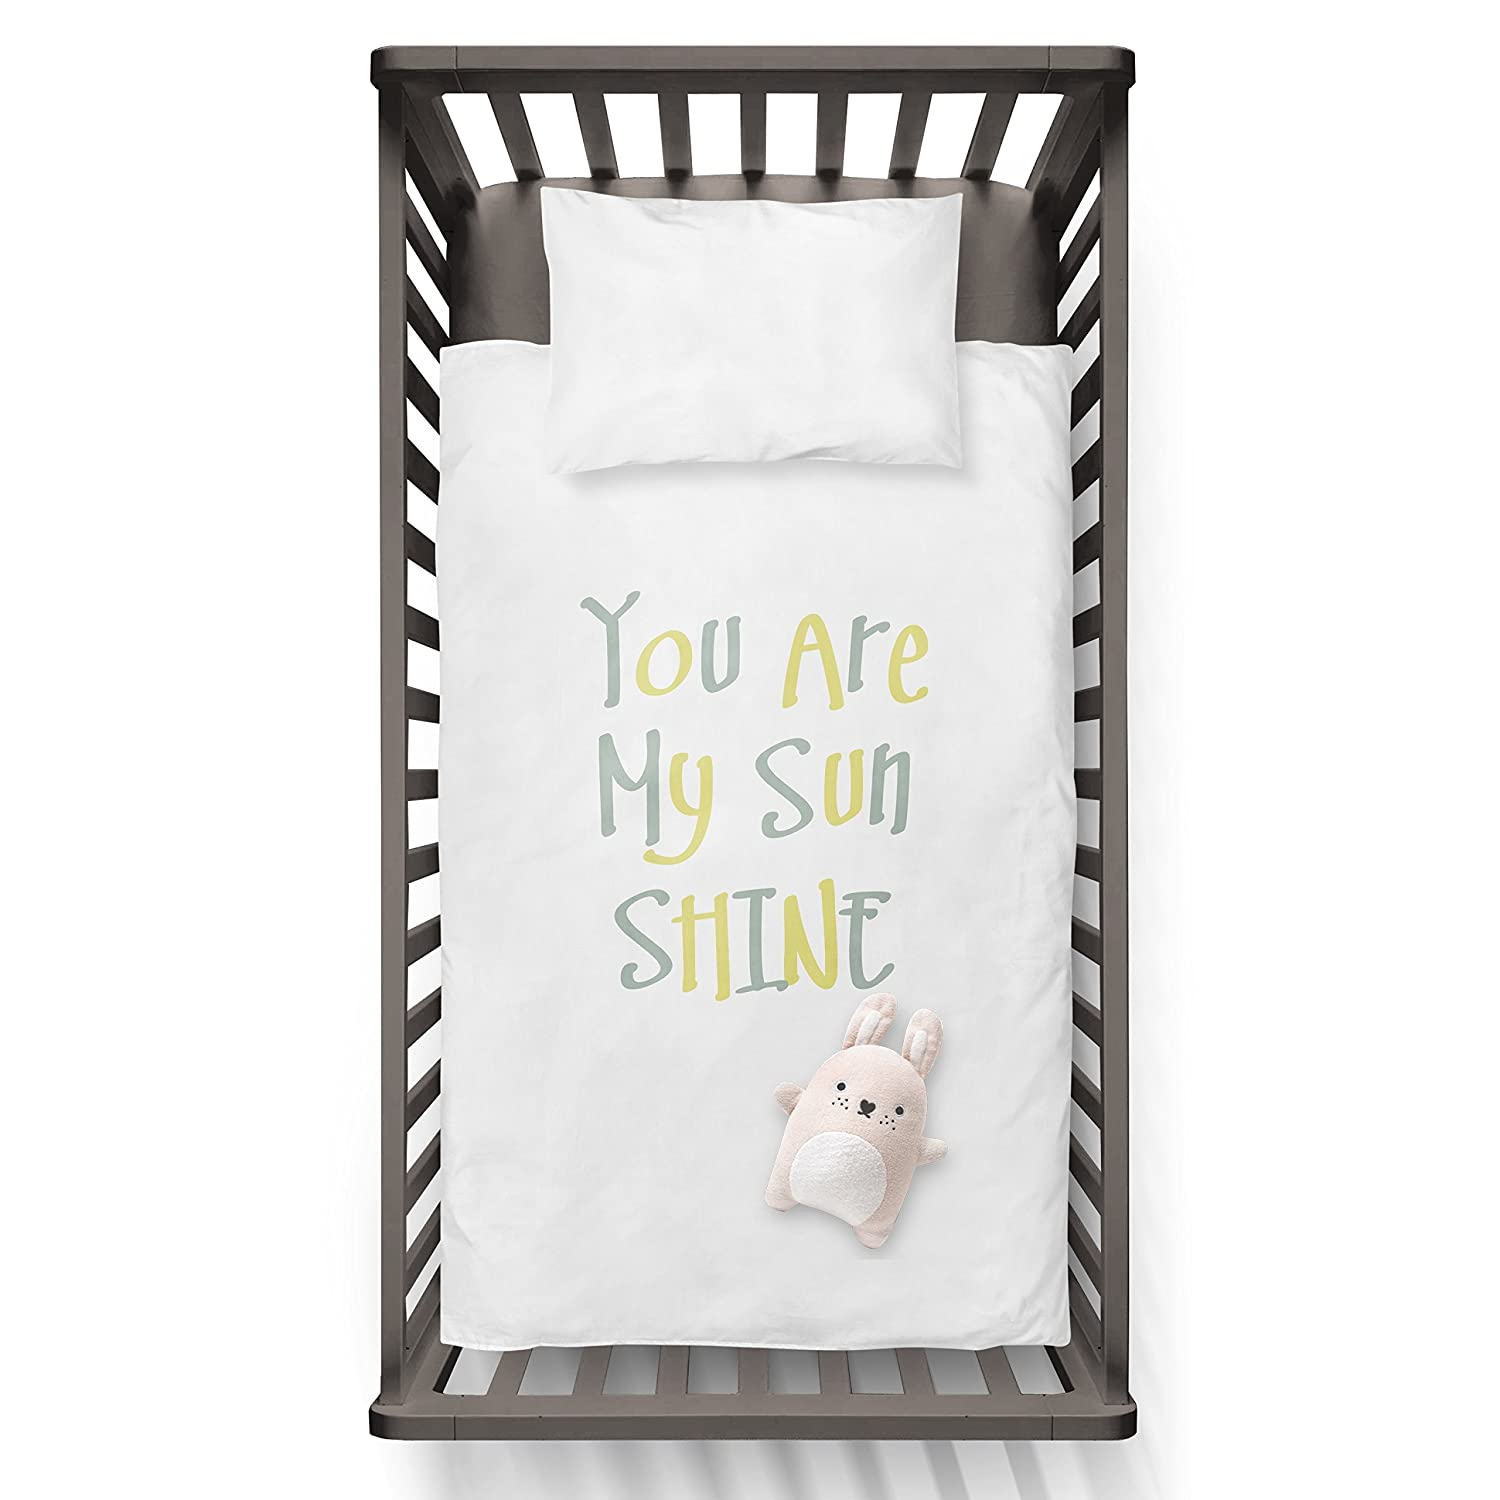 You Are My Sun Shine Funny Humor Hip Baby Duvet /Pillow set, Toddler Duvet, Oeko-Tex, Personalized duvet and pillow, Oraganic, gift Jobhome AB0004